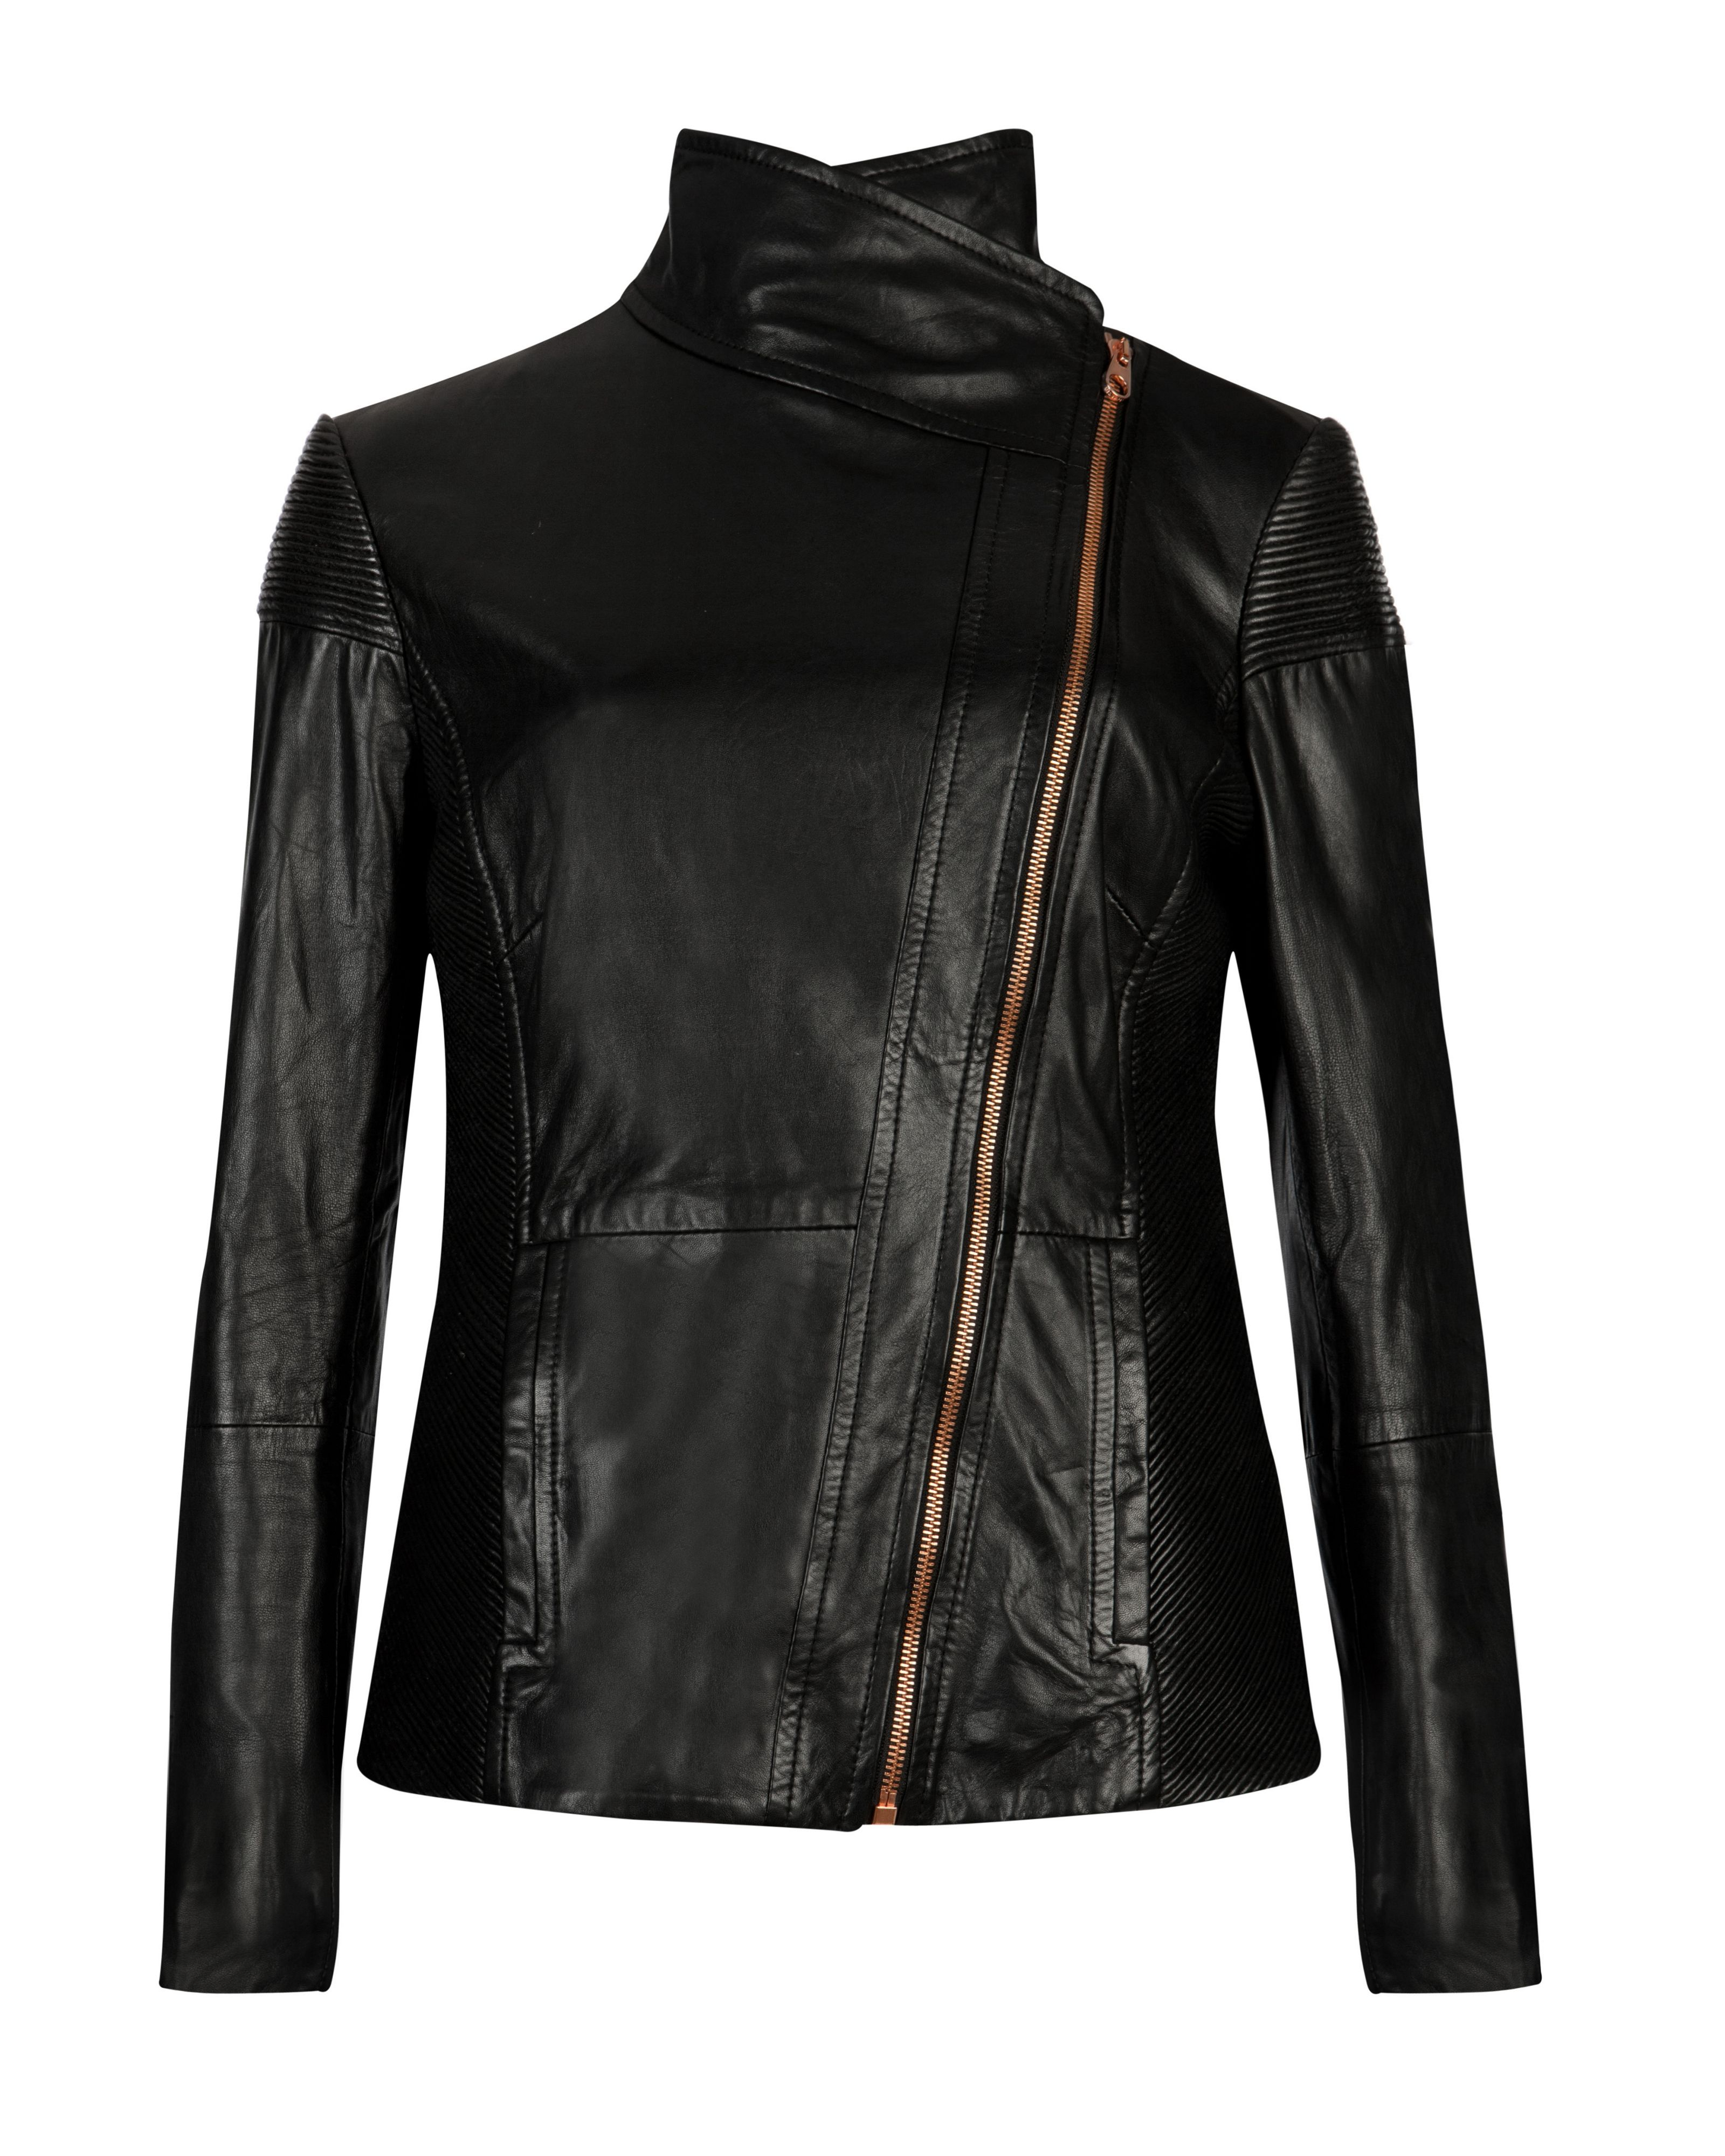 Lahara leather jacket